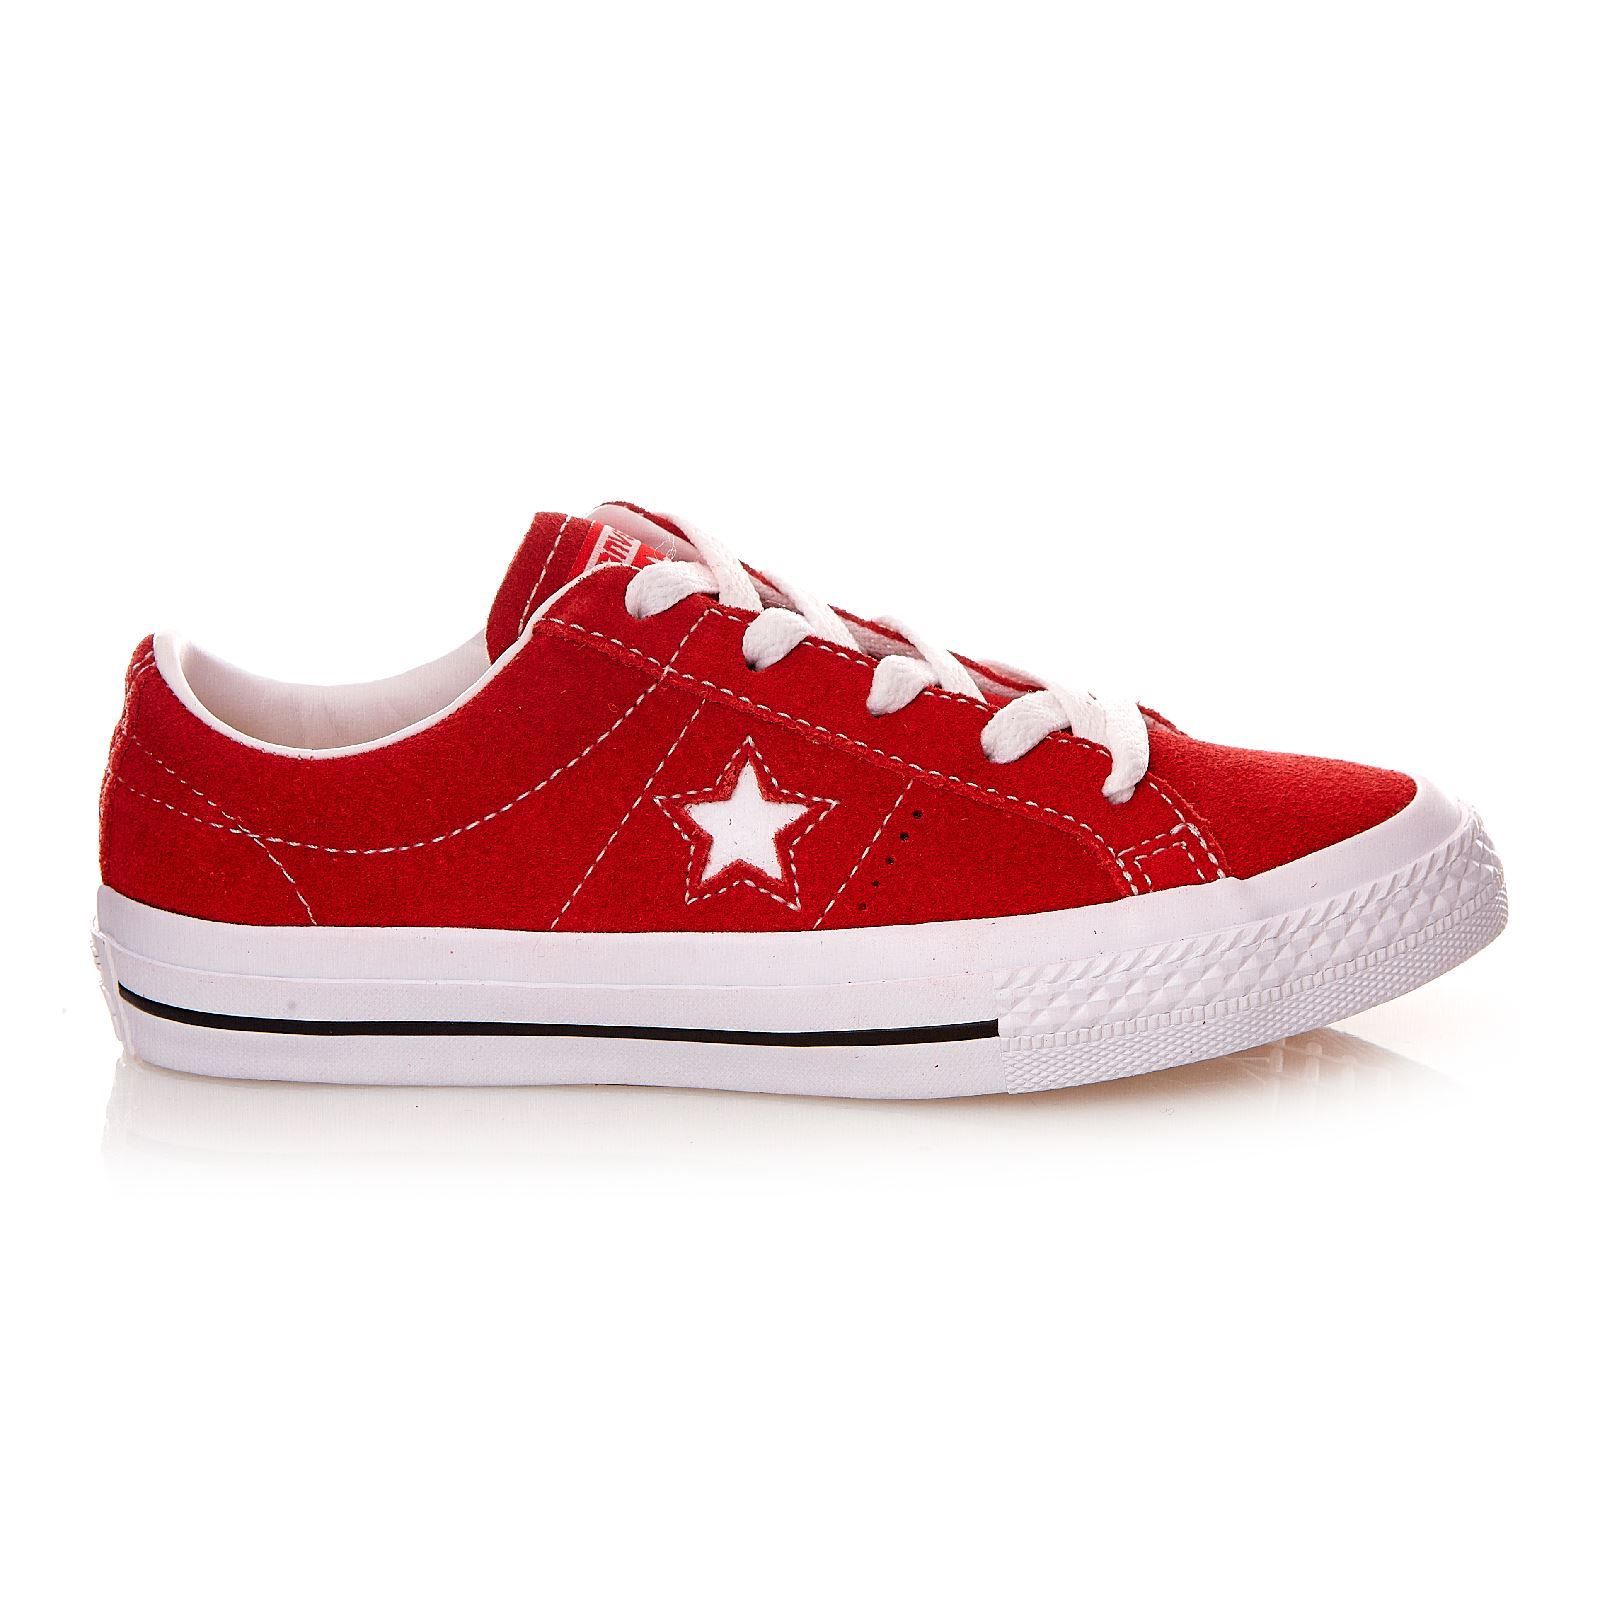 converse one star suede rouge